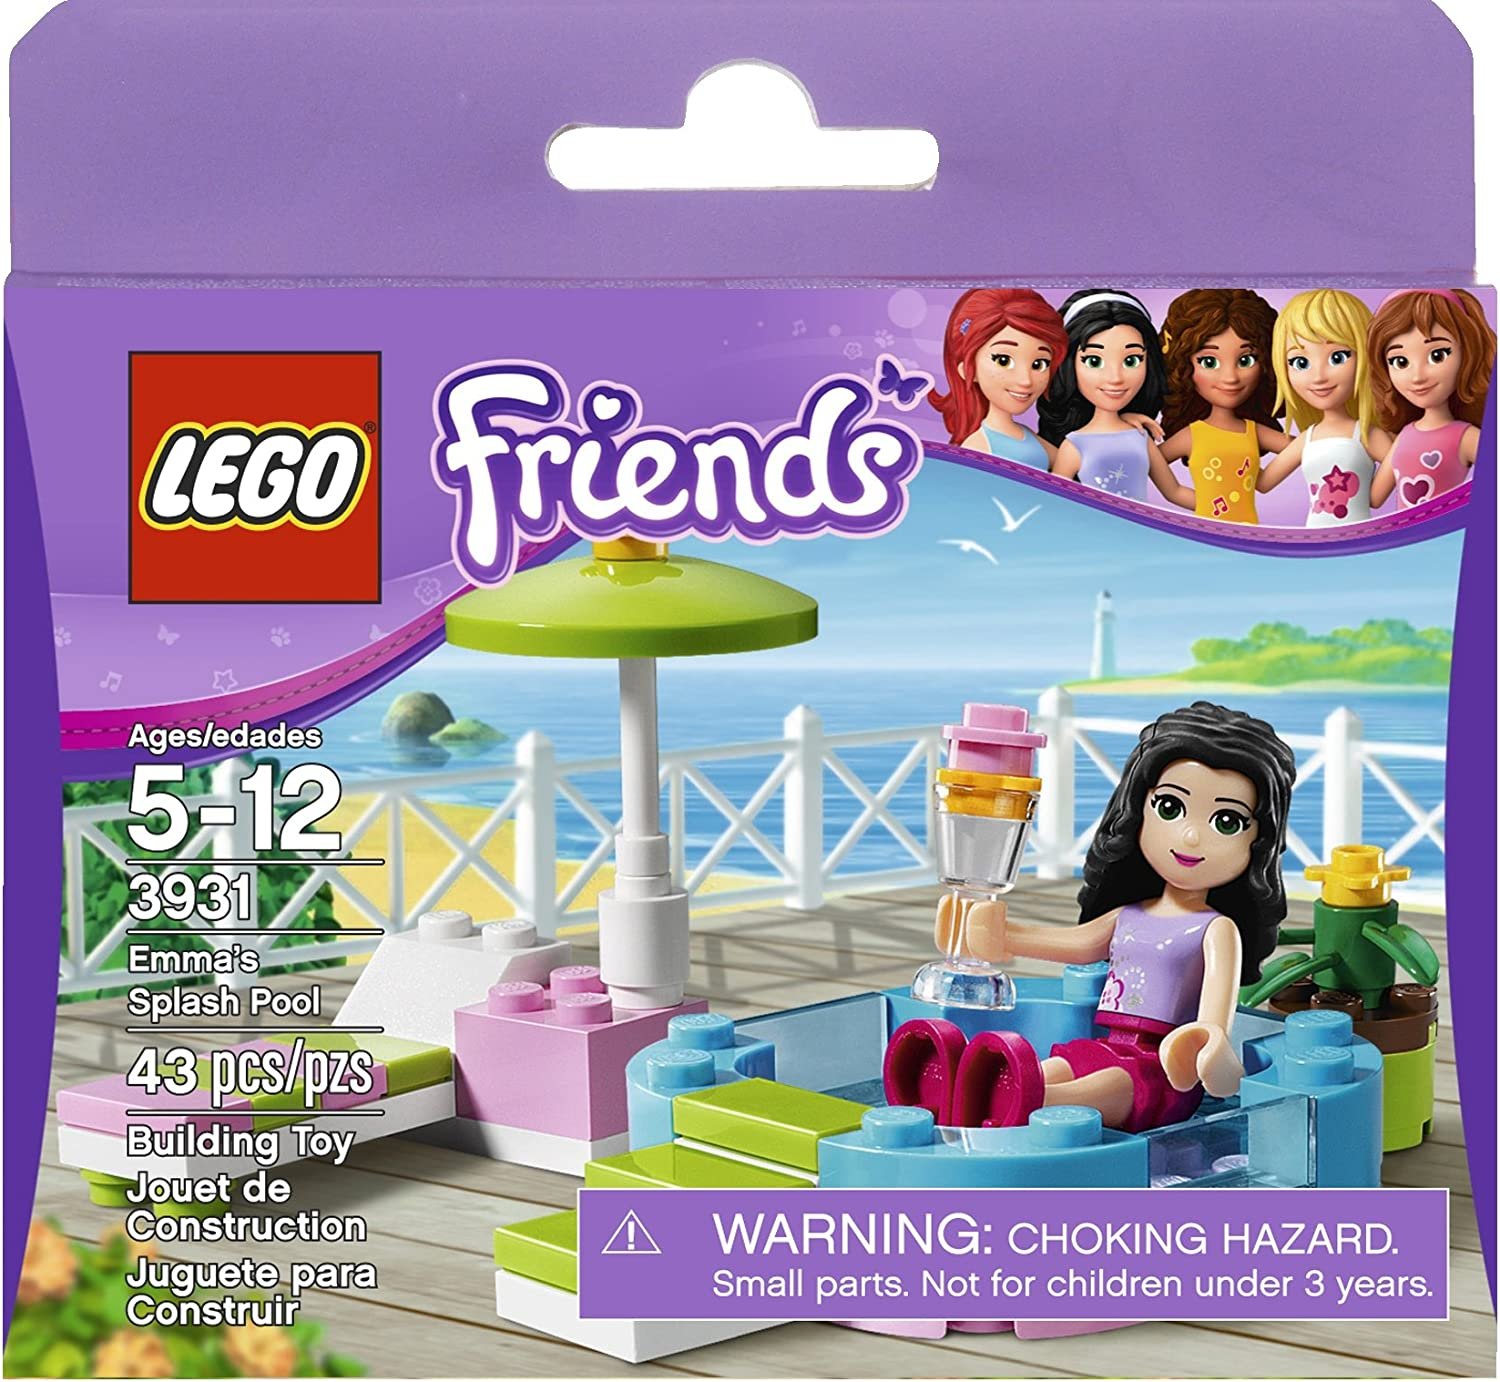 Lego Friends Magazine issue 36 Emma's pool party